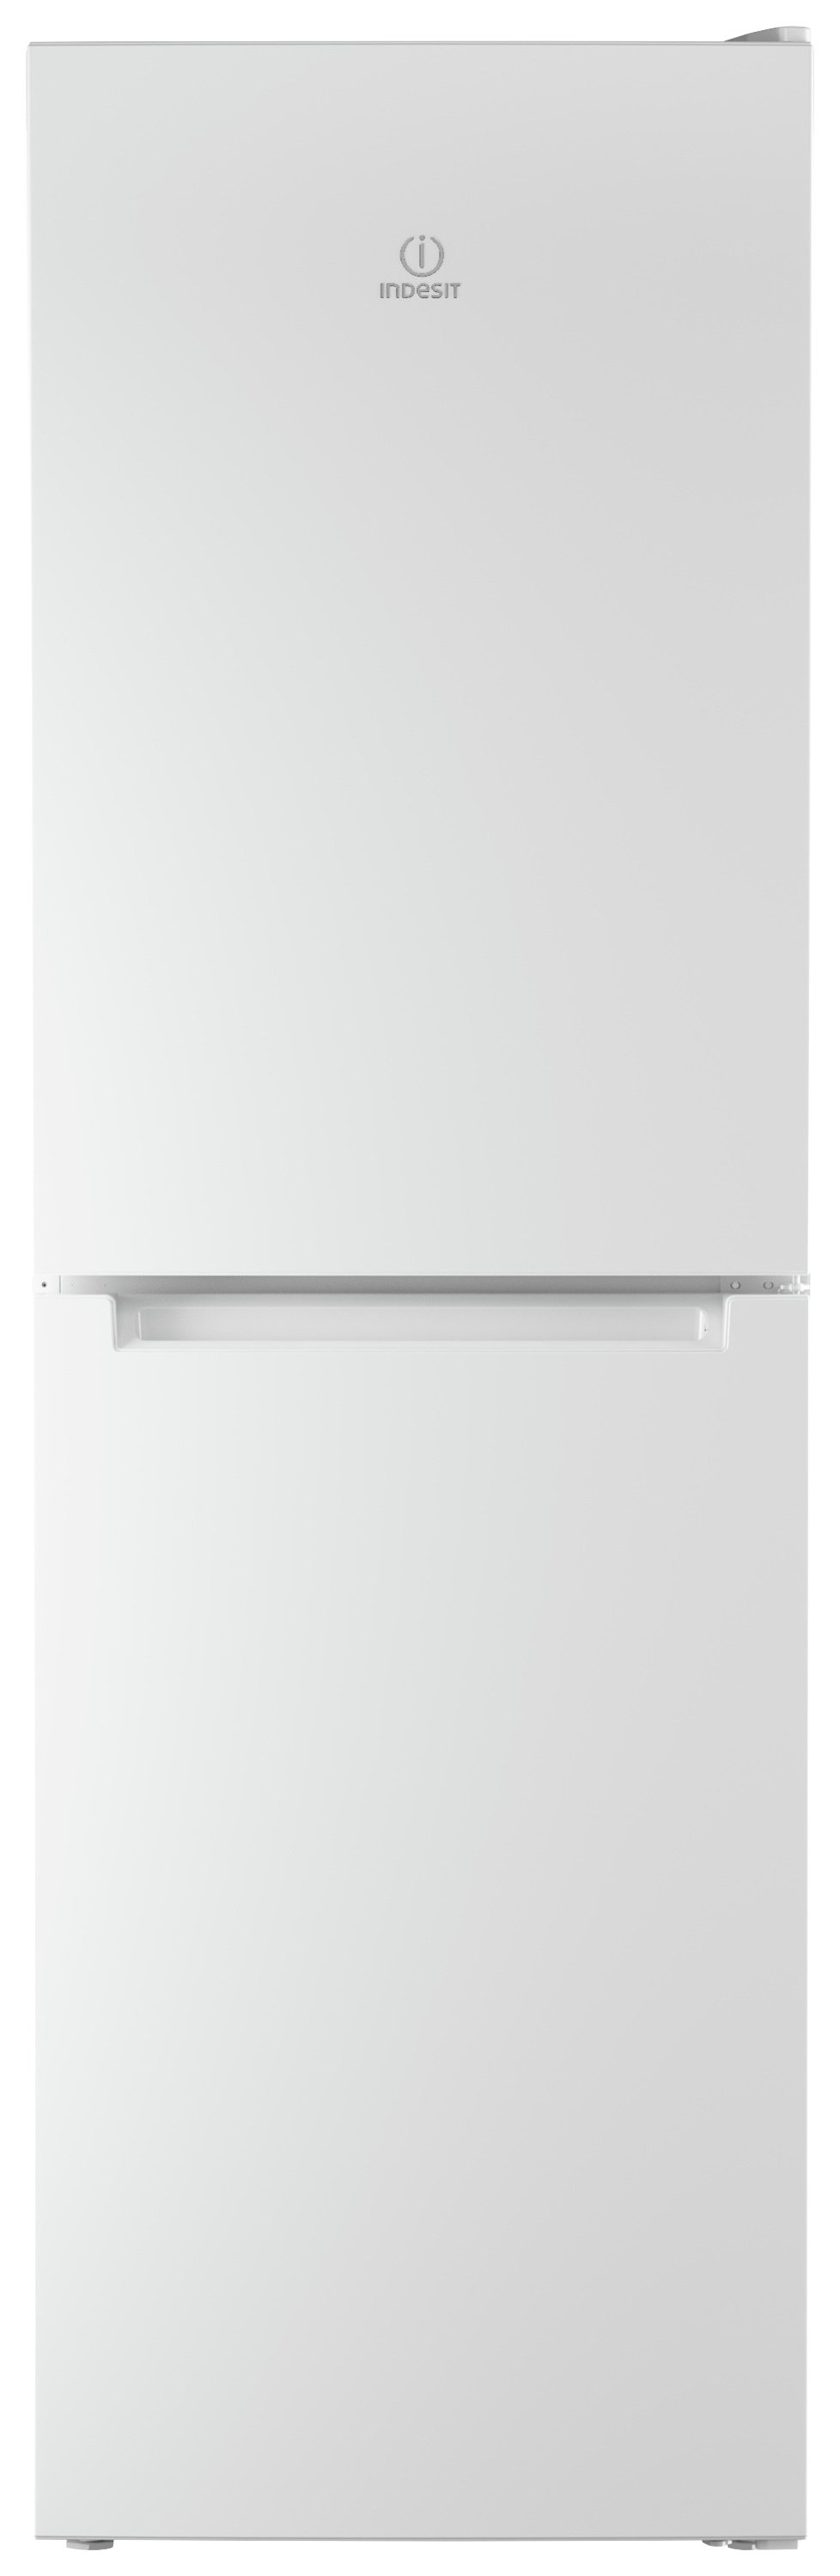 Indesit LD85 F1W Freestanding Fridge Freezer - White